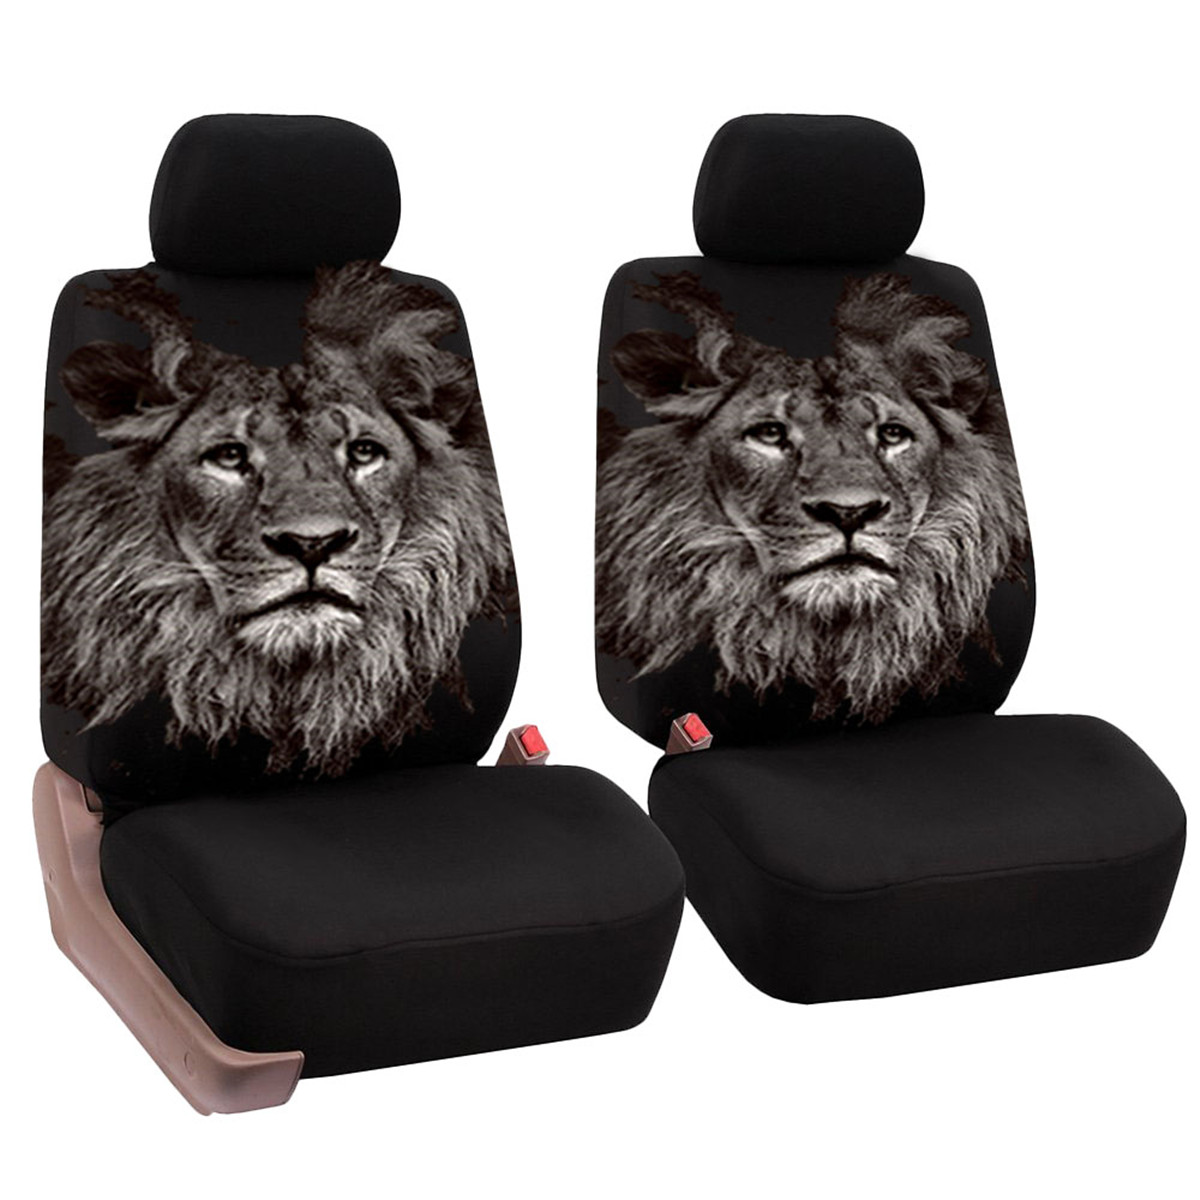 2pcs Set Auto Seat Cover Car Seat Cushion Universal Lion Front Seat Covers Protector Polyester Car Auto Truck SUV 2 Heads ...